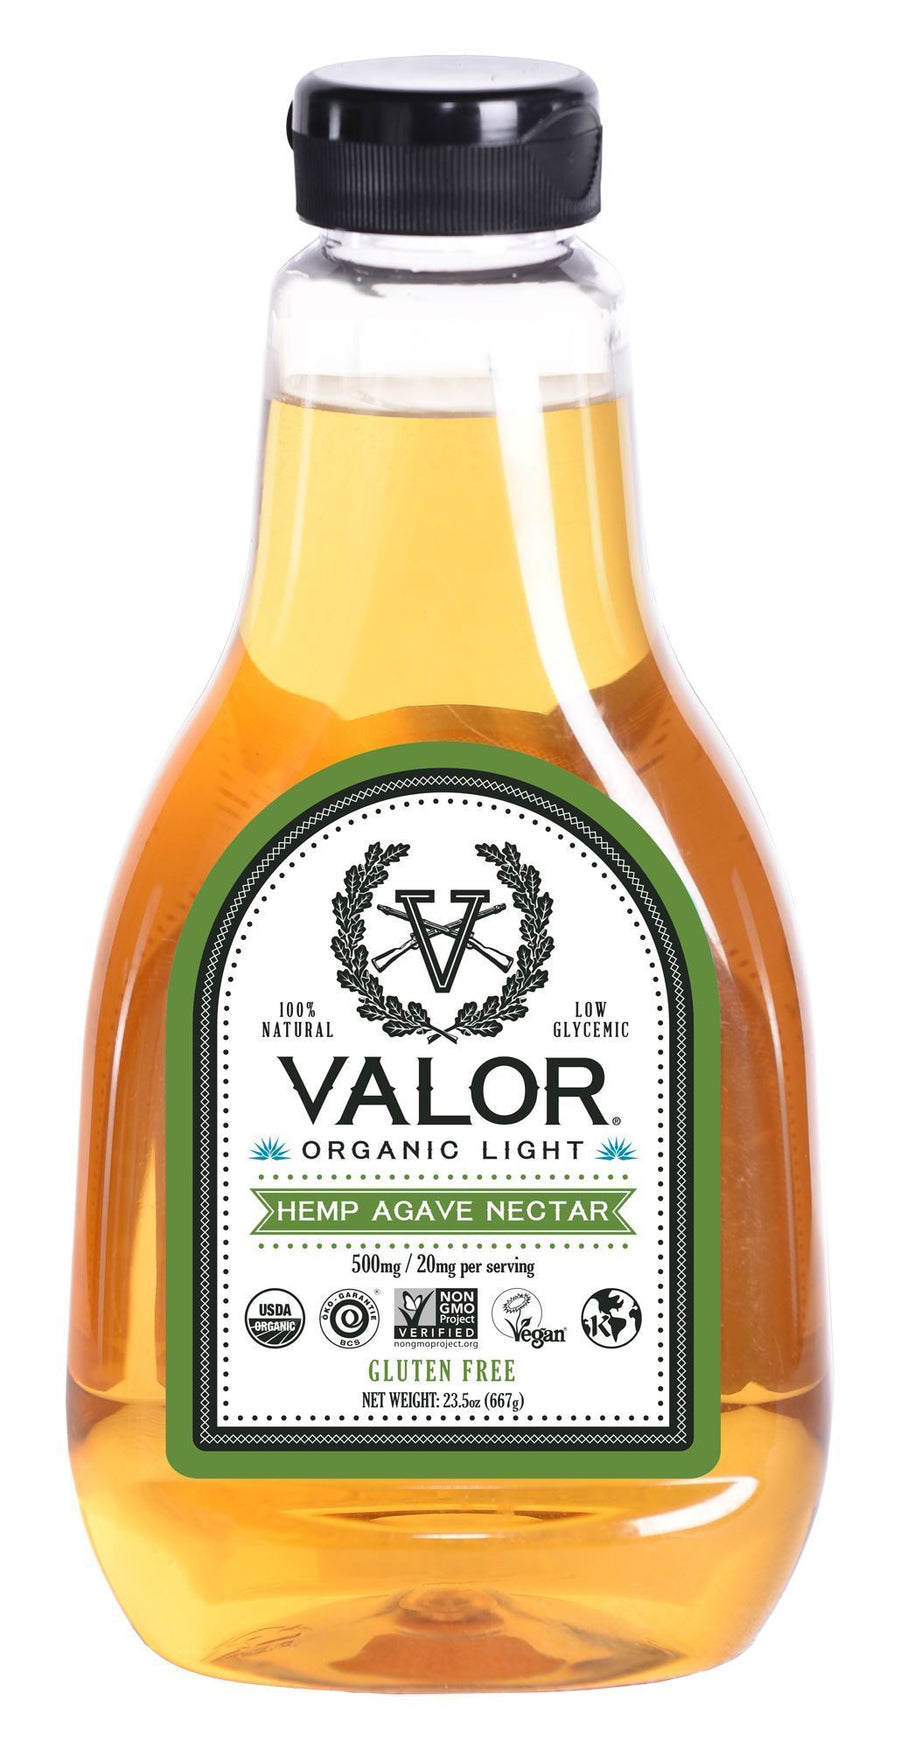 Valor Organic Light Hemp Agave Nectar 23.5 oz Valor Agave Valor Spirits, Inc.